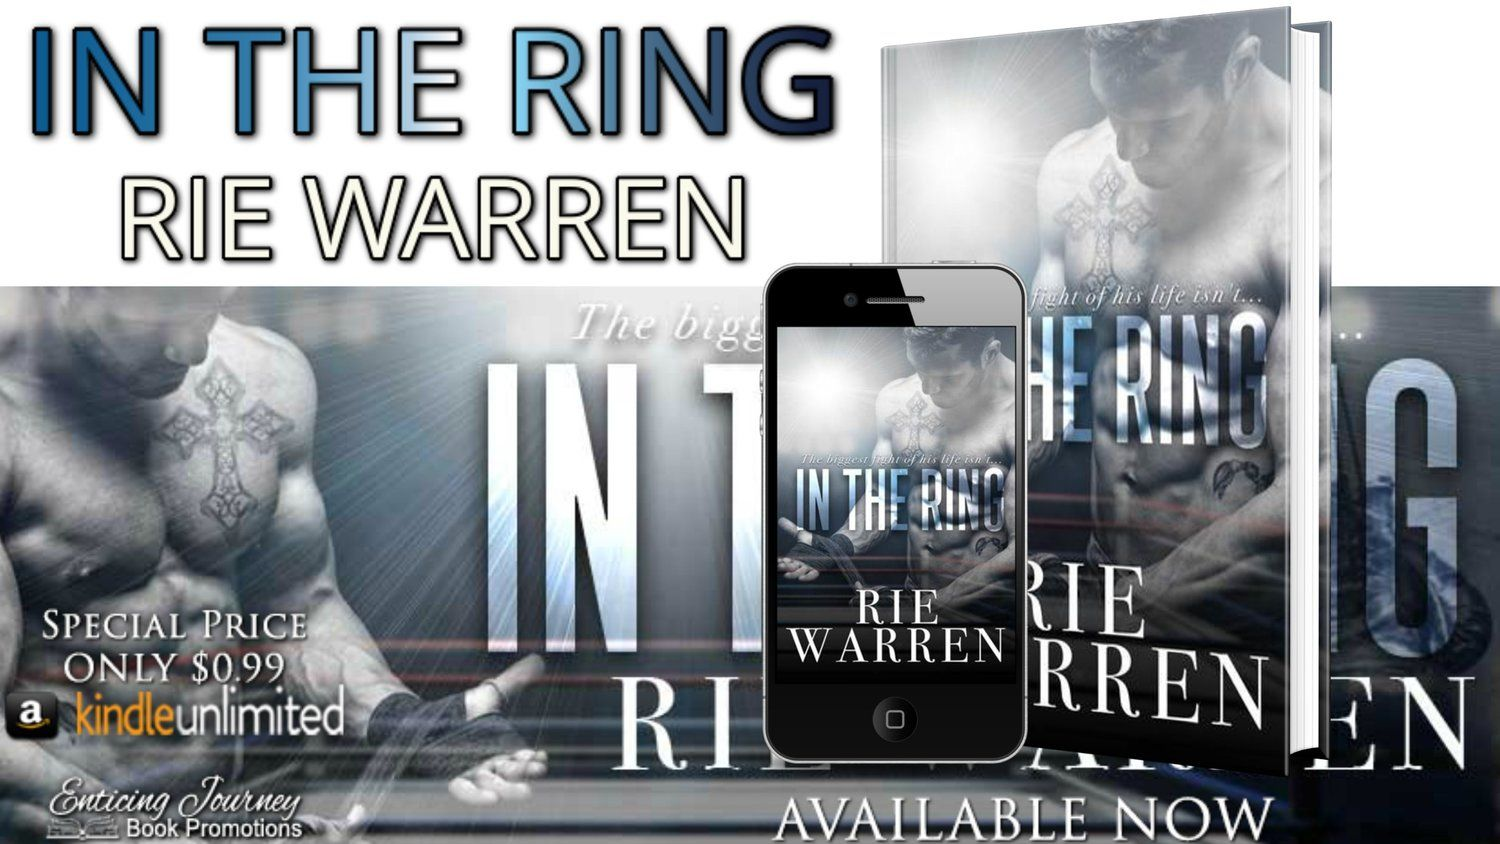 #ReleaseDay • In The Ring (Boxer Book 1)  by Rie Warren • Excerpt • http://amzn.to/2fgRom1 Teasers • Review • Giveaway